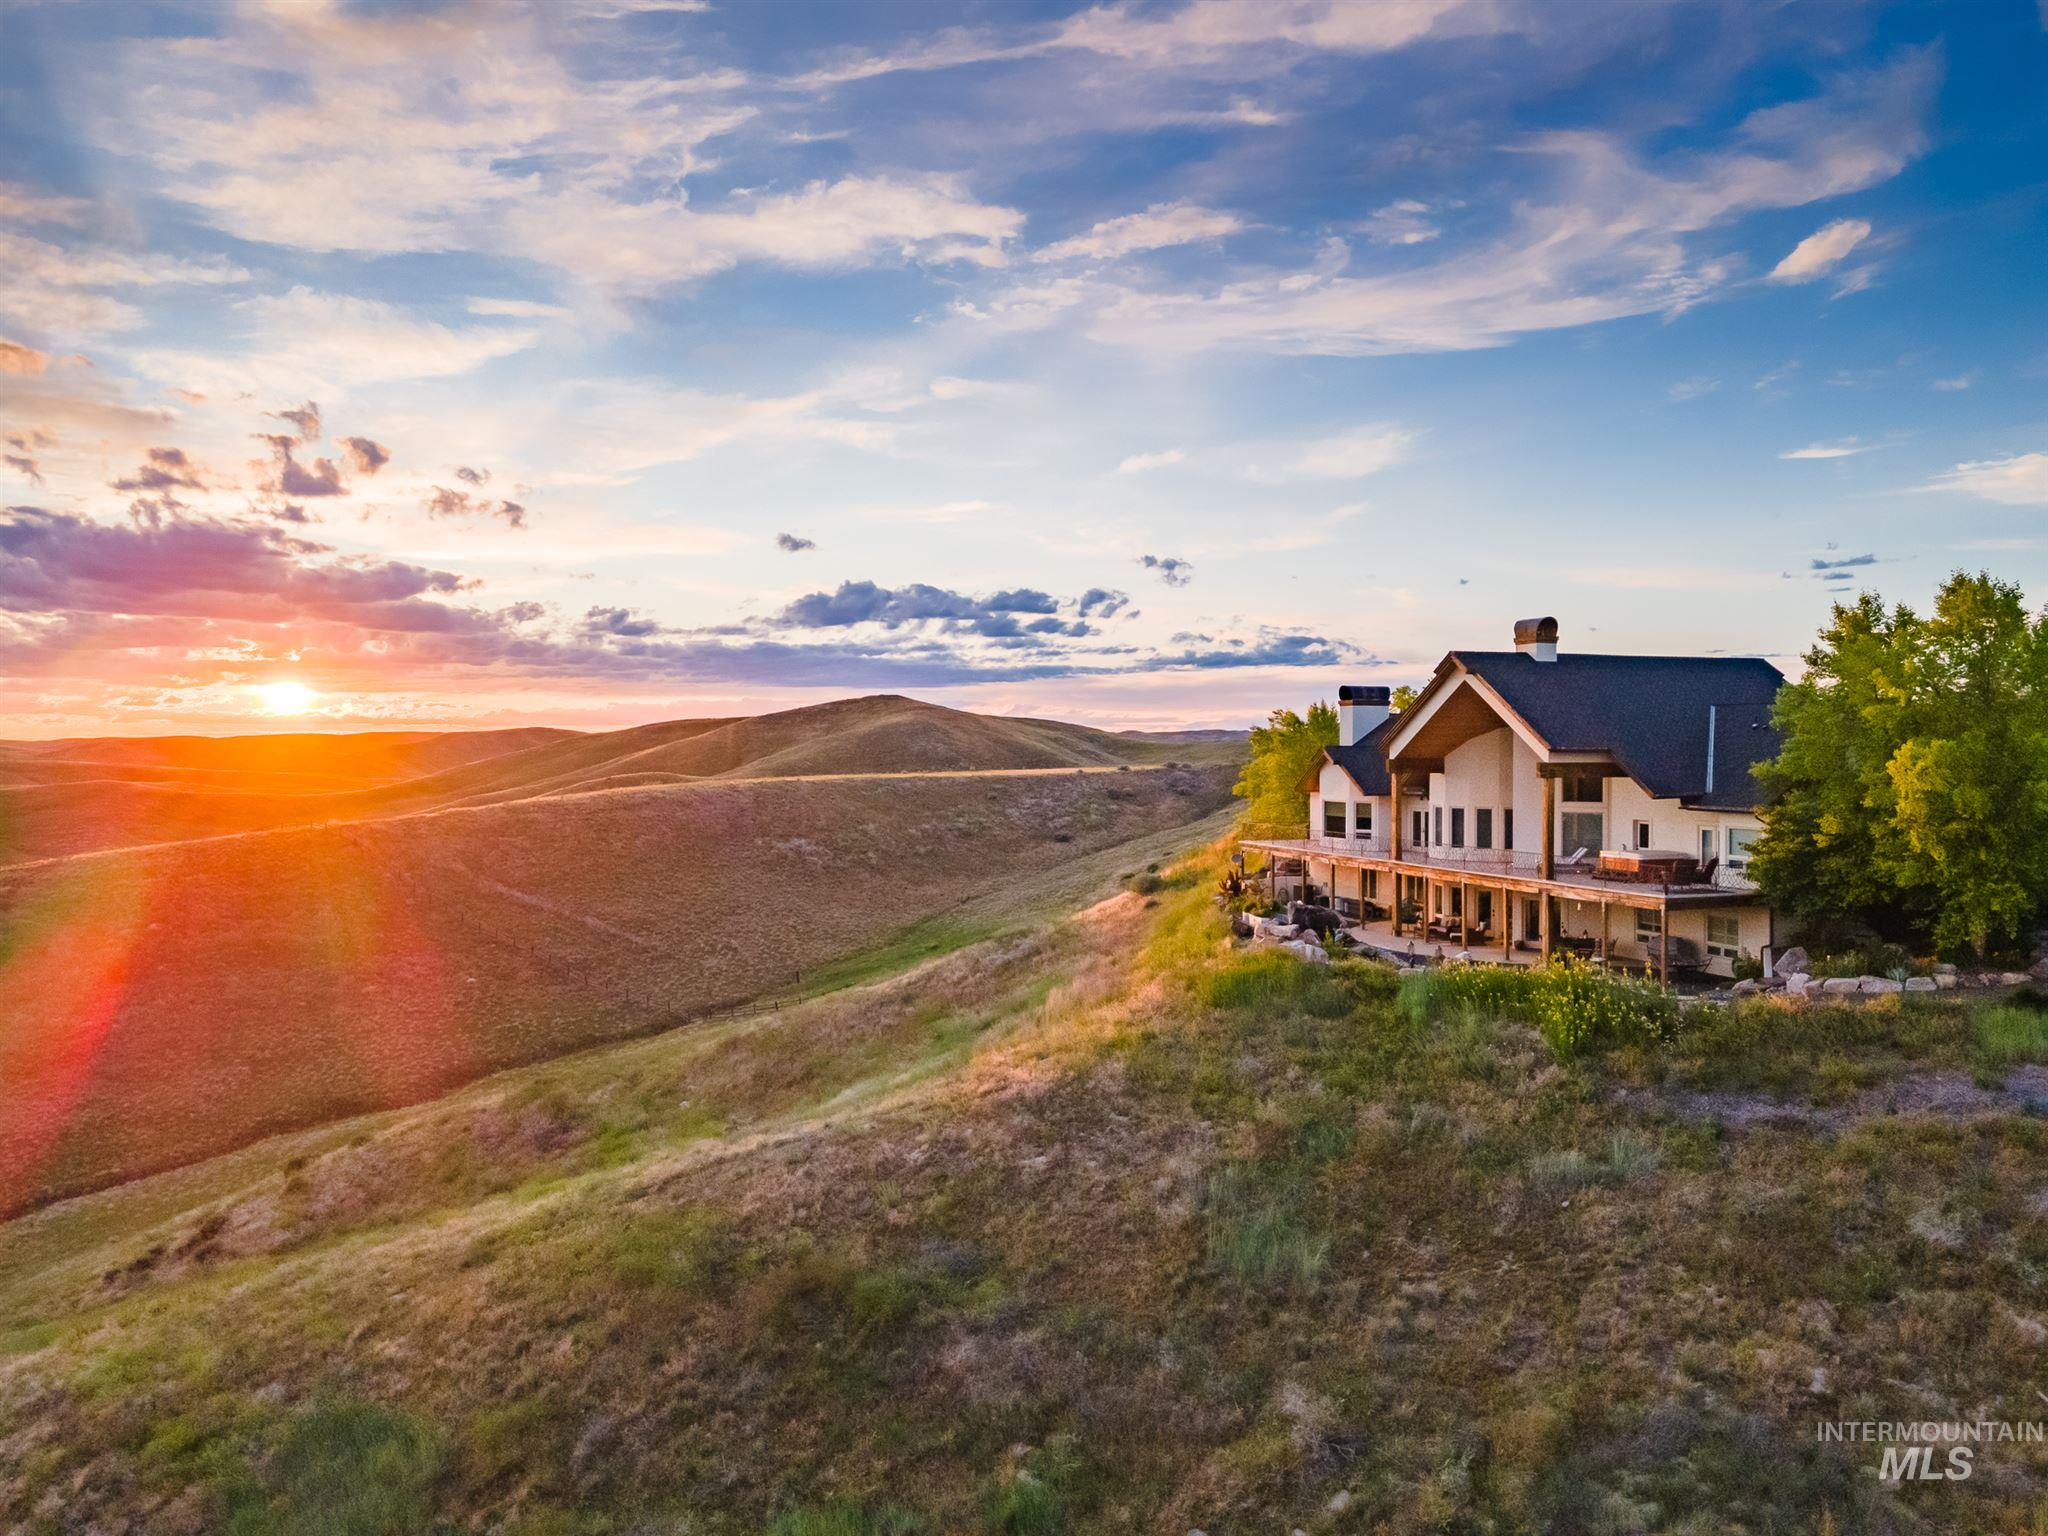 The pinnacle of high living, this palatial 10 acre estate home perched atop the rolling hills of North Eagle boasts the most breathtaking & awe inspiring 360° views of the entire valley. Wrap around balcony spans the entire main level offering unobstructed views from Nampa to Boise as far as the eye can see. Expansive & flexible floor plan, bountiful great room with vaulted ceilings, an entertainer's paradise. This Home exudes charm, with 90 yr old reclaimed barn wood floors there is character in abundance.